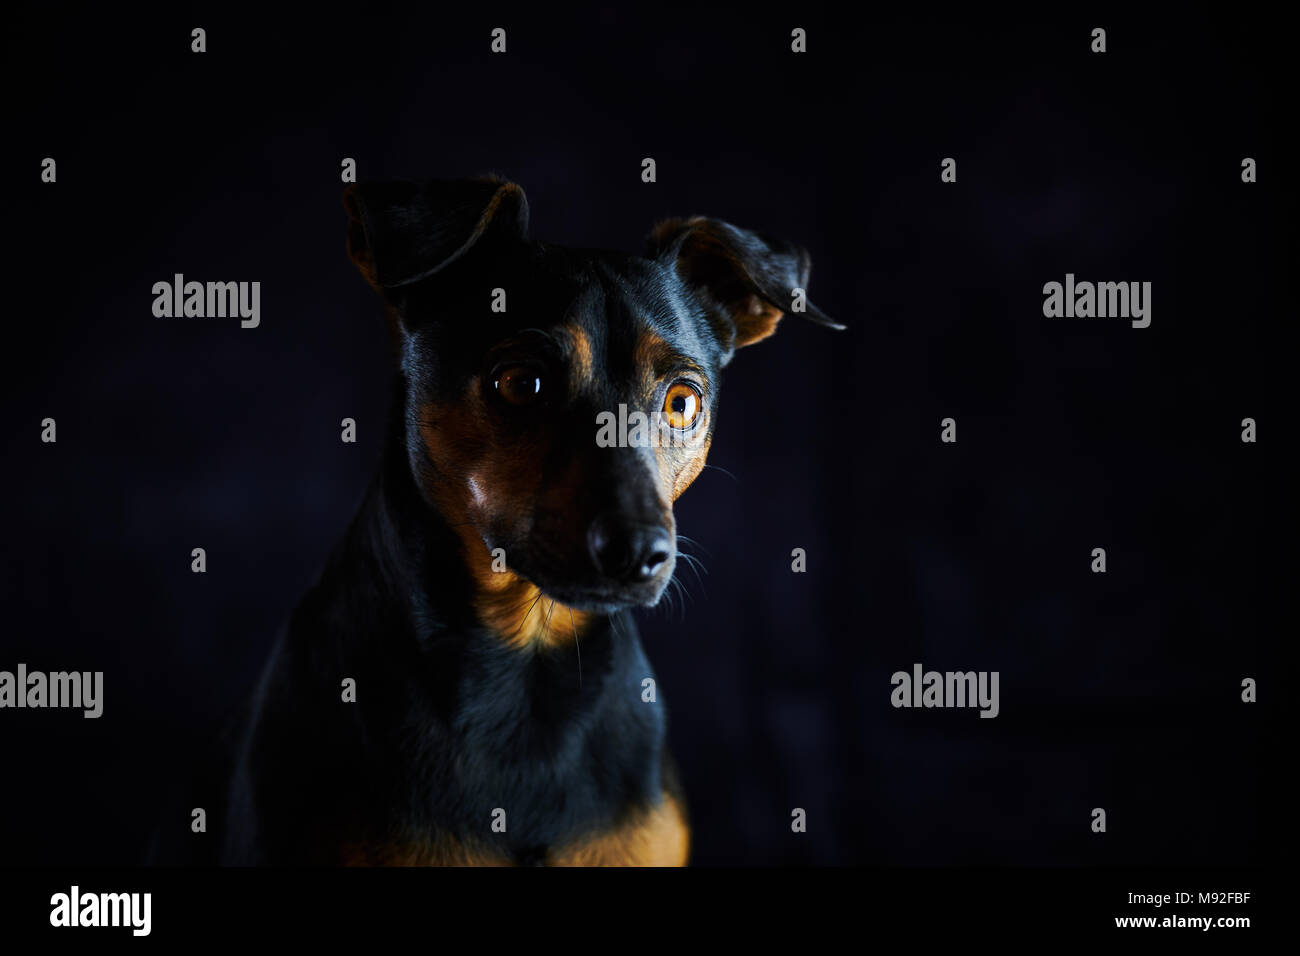 A small black & Tan Patterdale Lakeland dog, photographed in a studio environment with a dark background. Focus is on the right eye - Stock Image